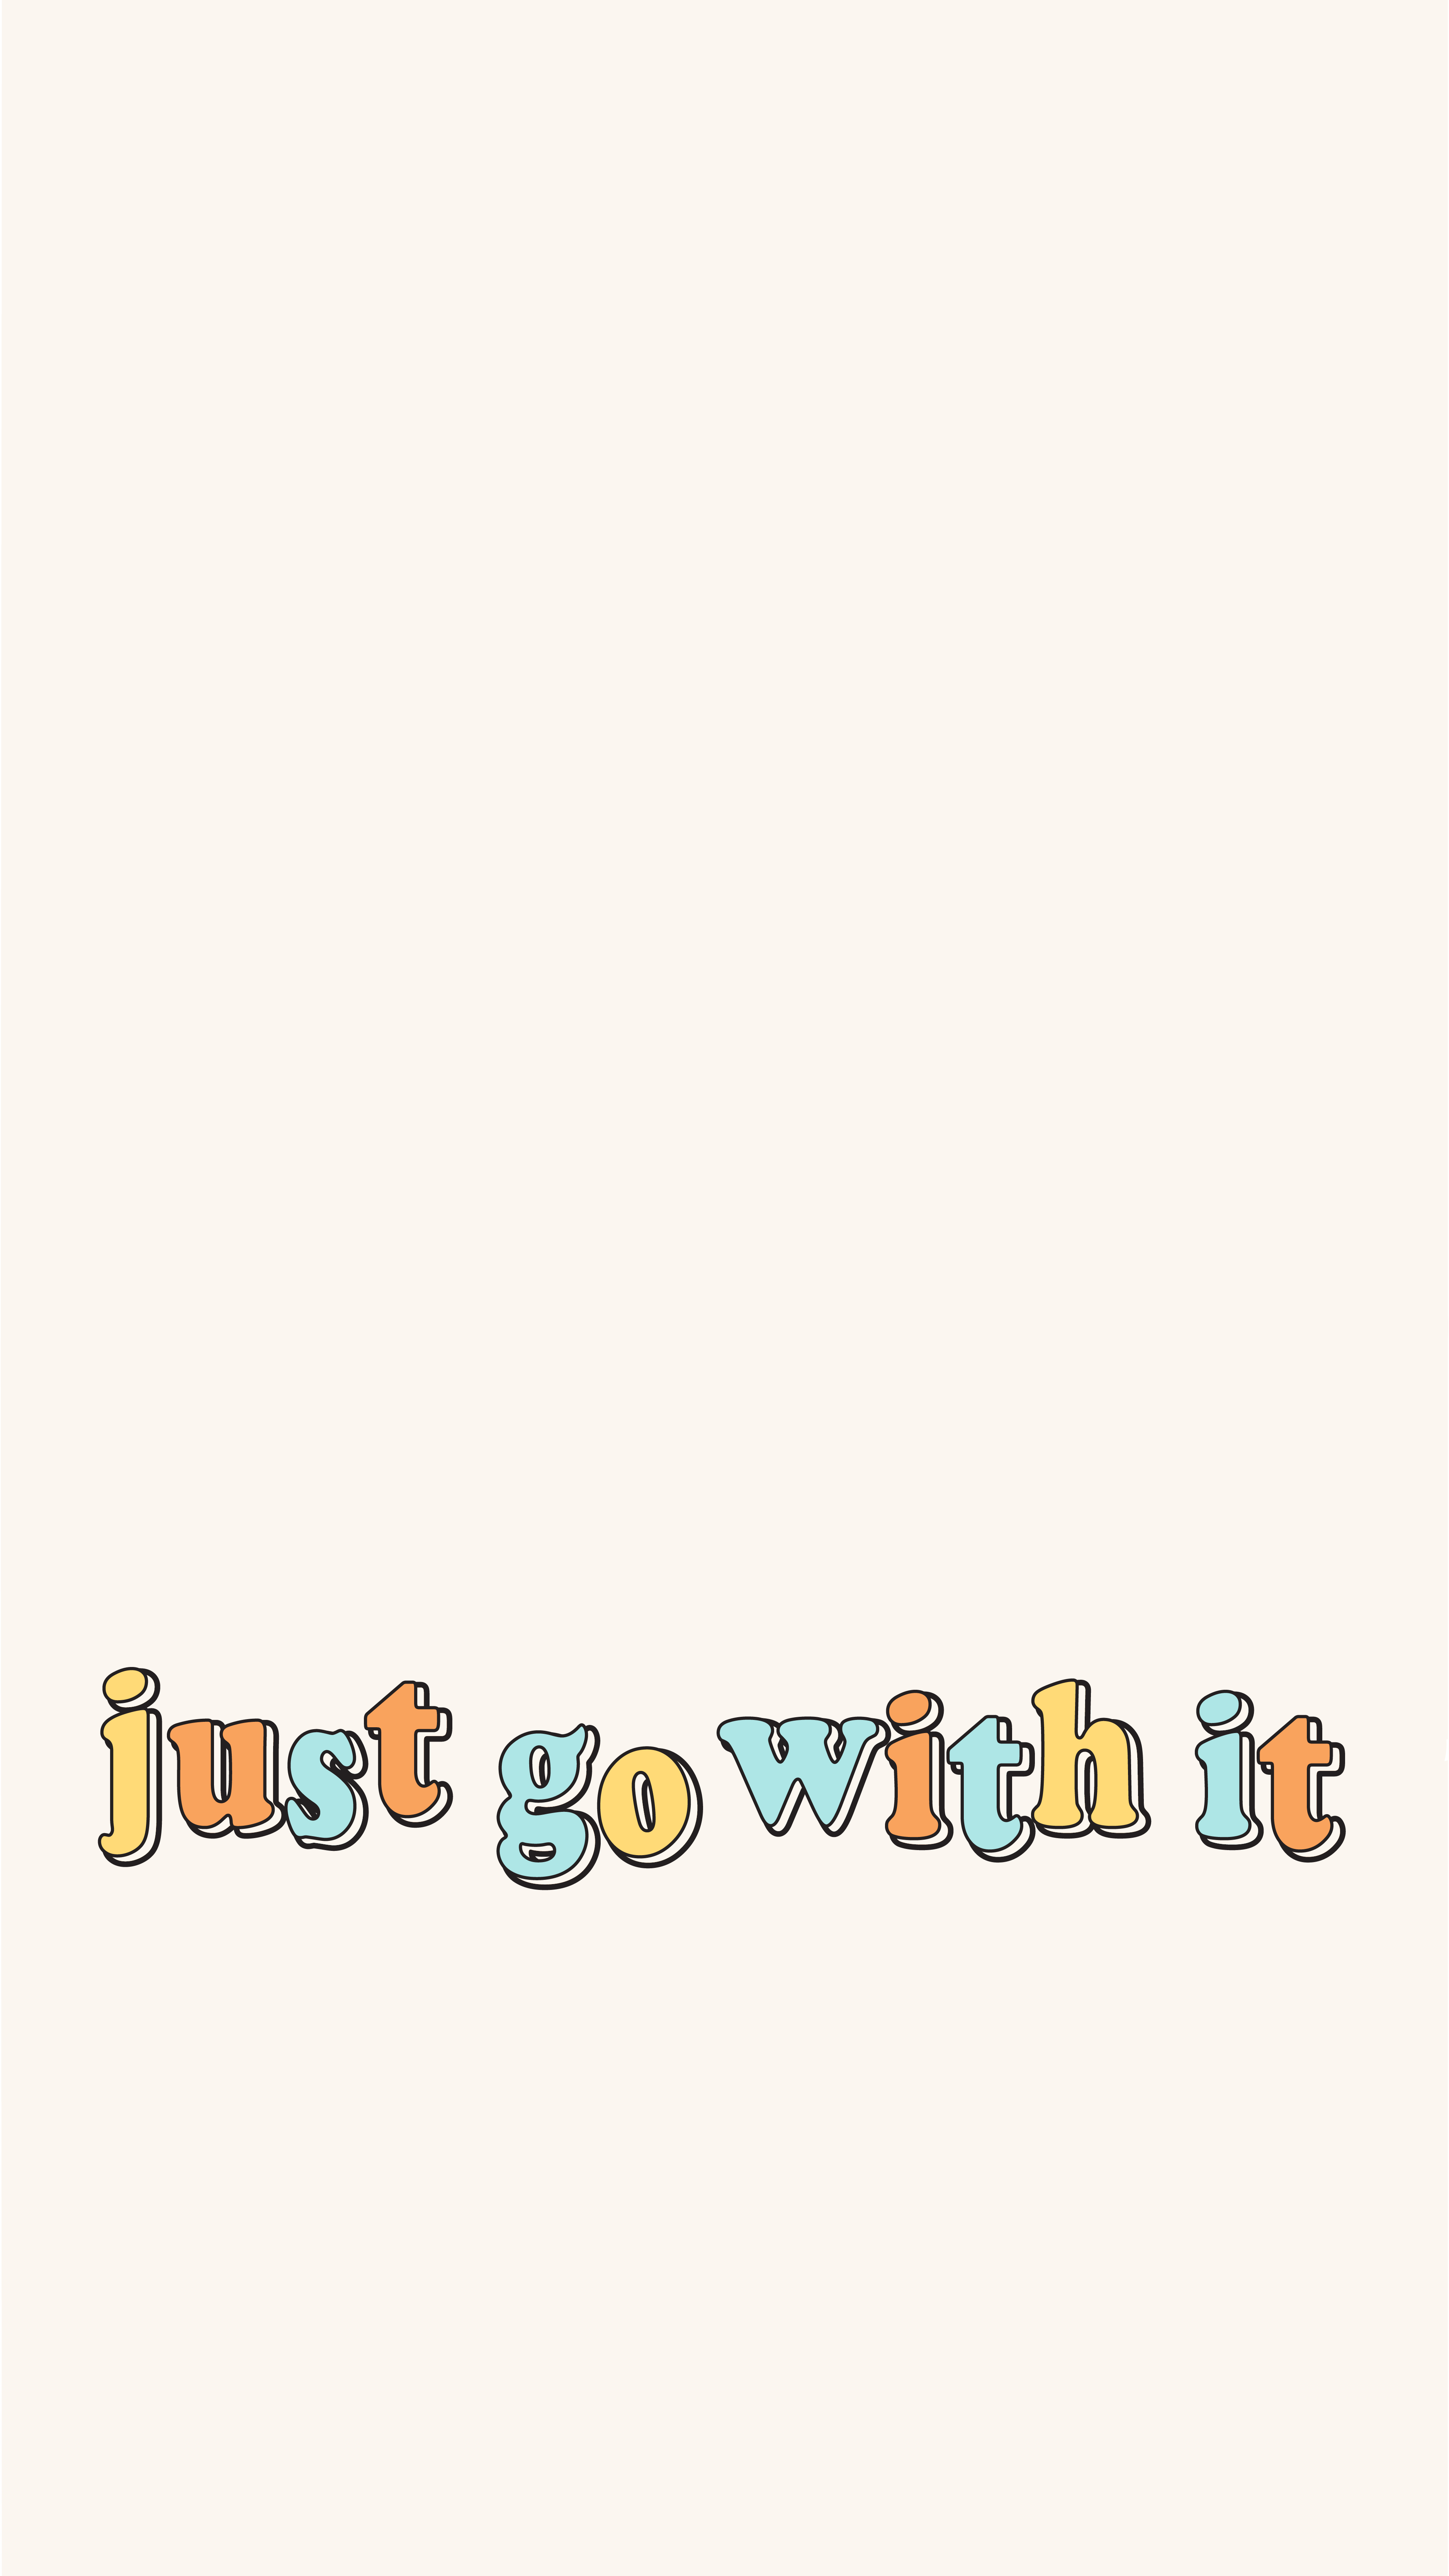 Just Go With It Quote #cutewallpaperbackgrounds Phone background. Reminder to go with the flow and